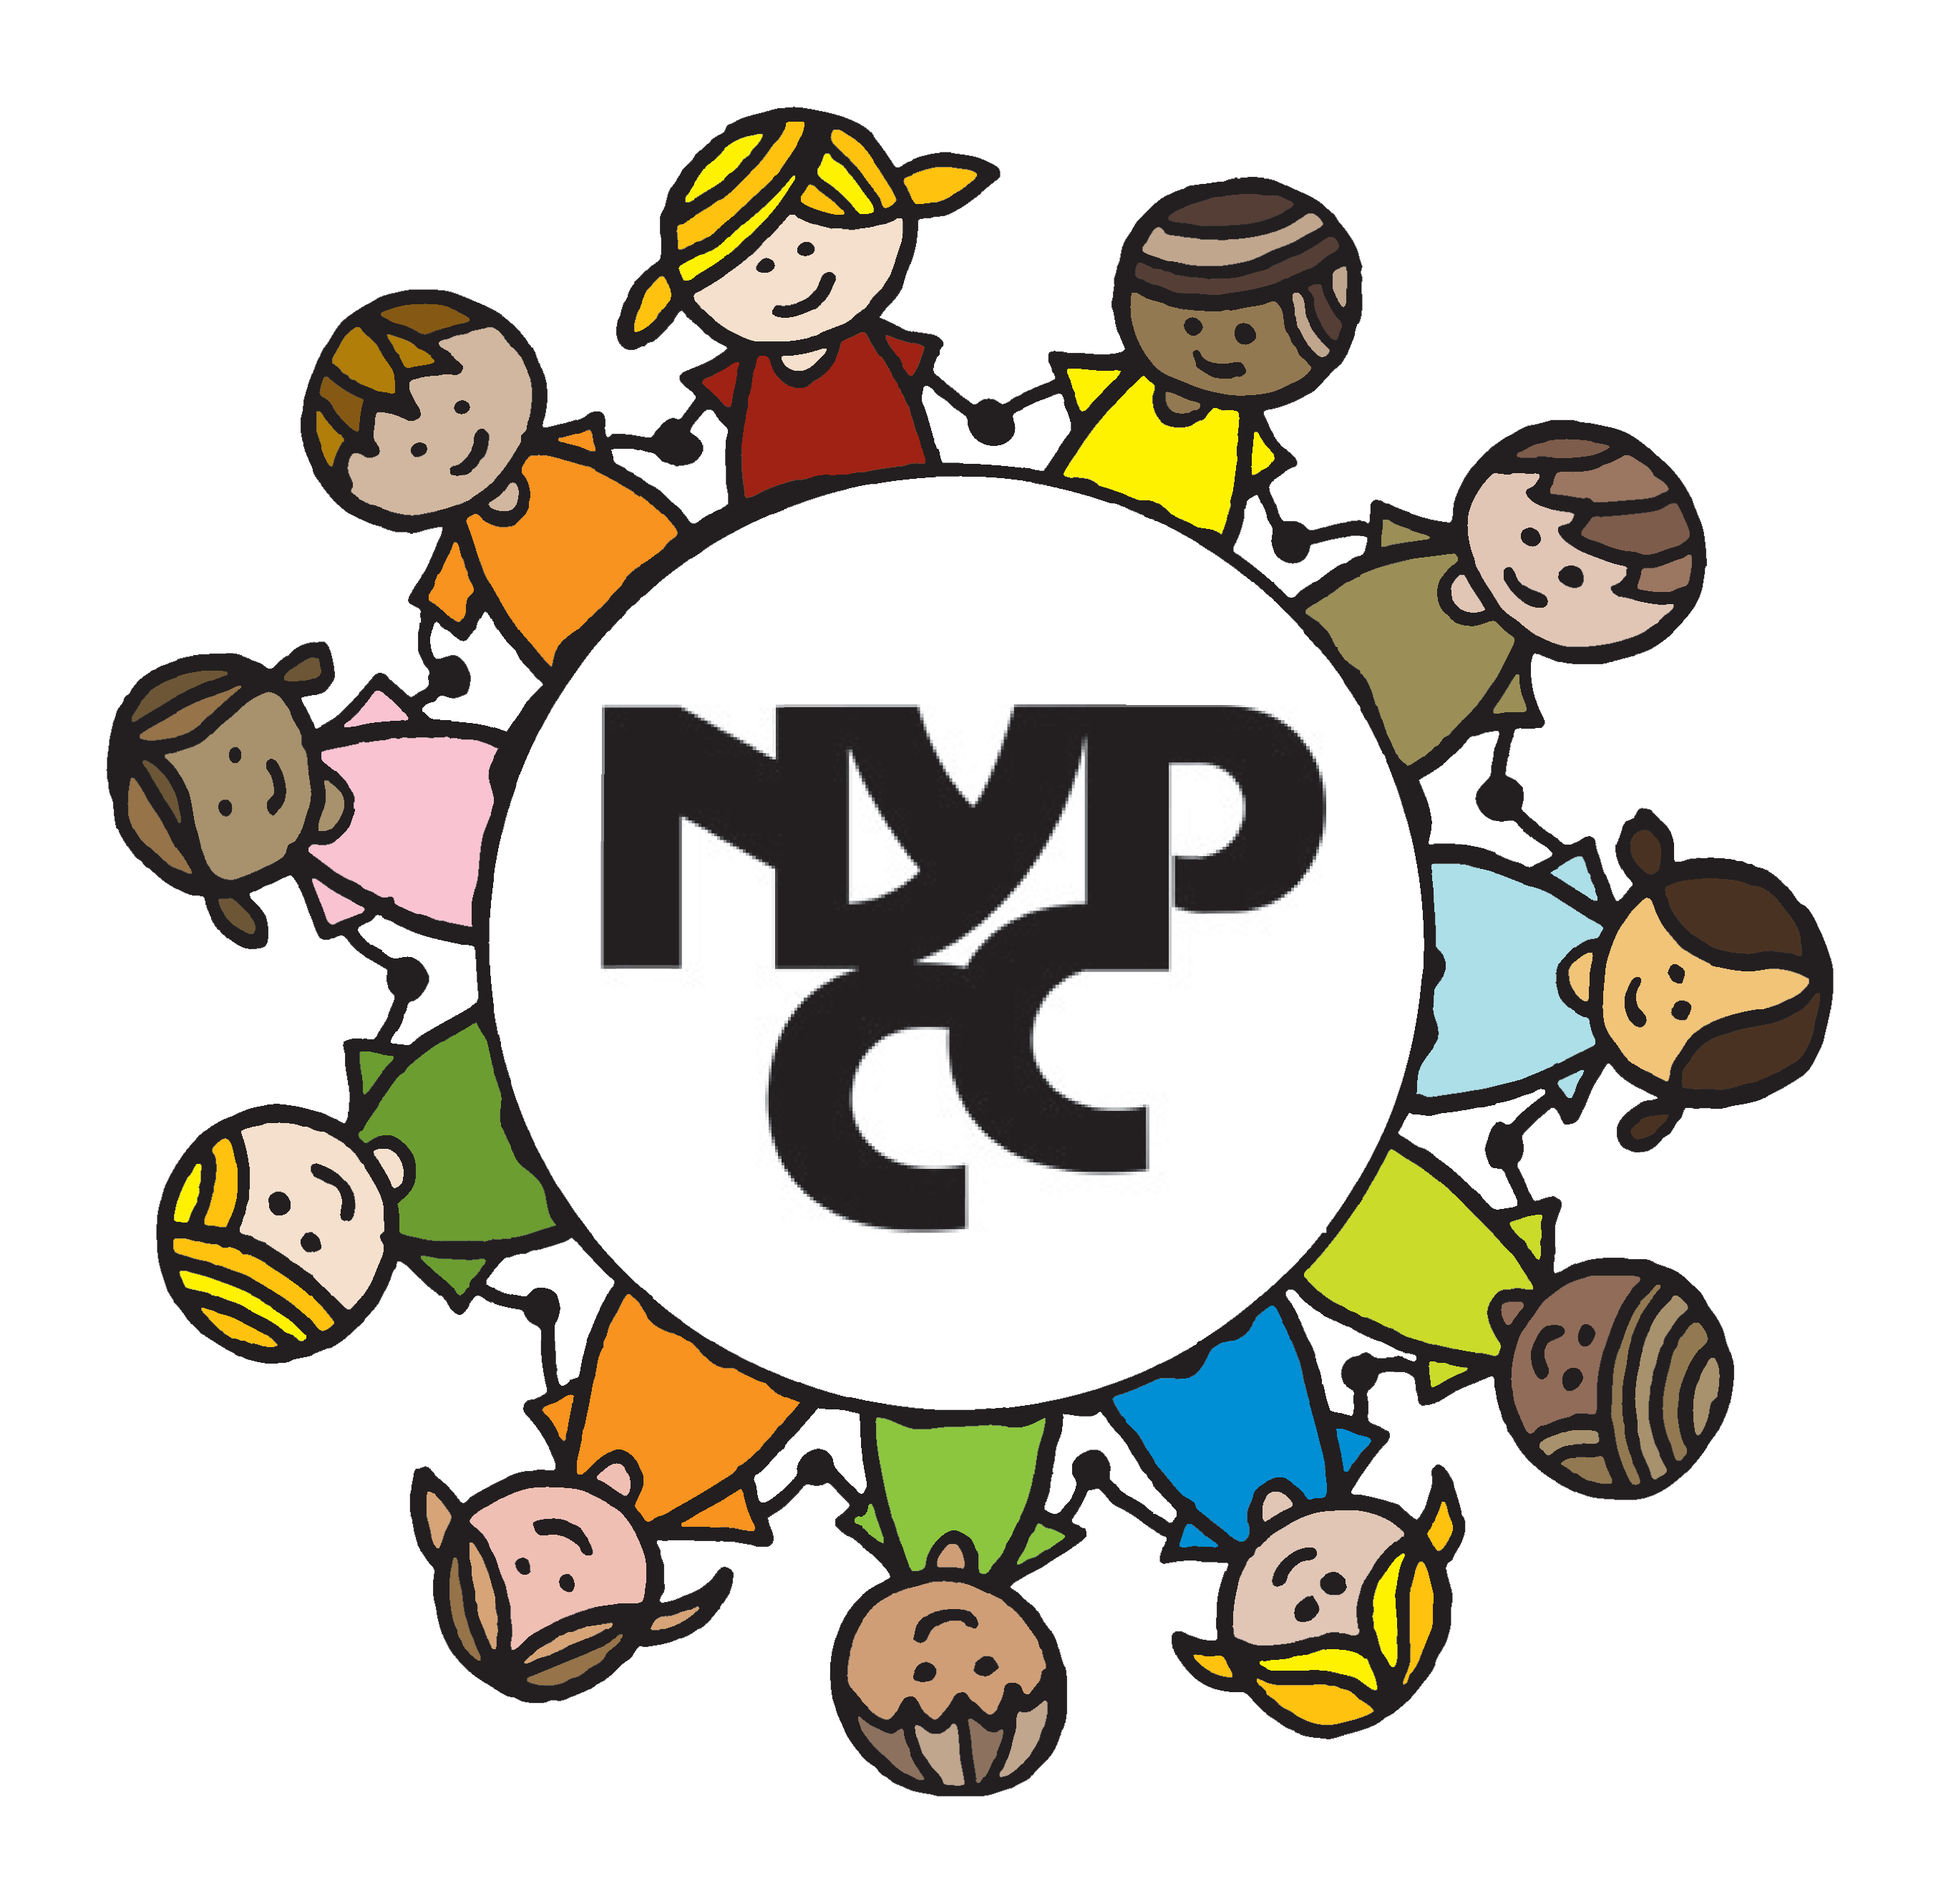 Clipart doctor counselling. New york psychotherapy and